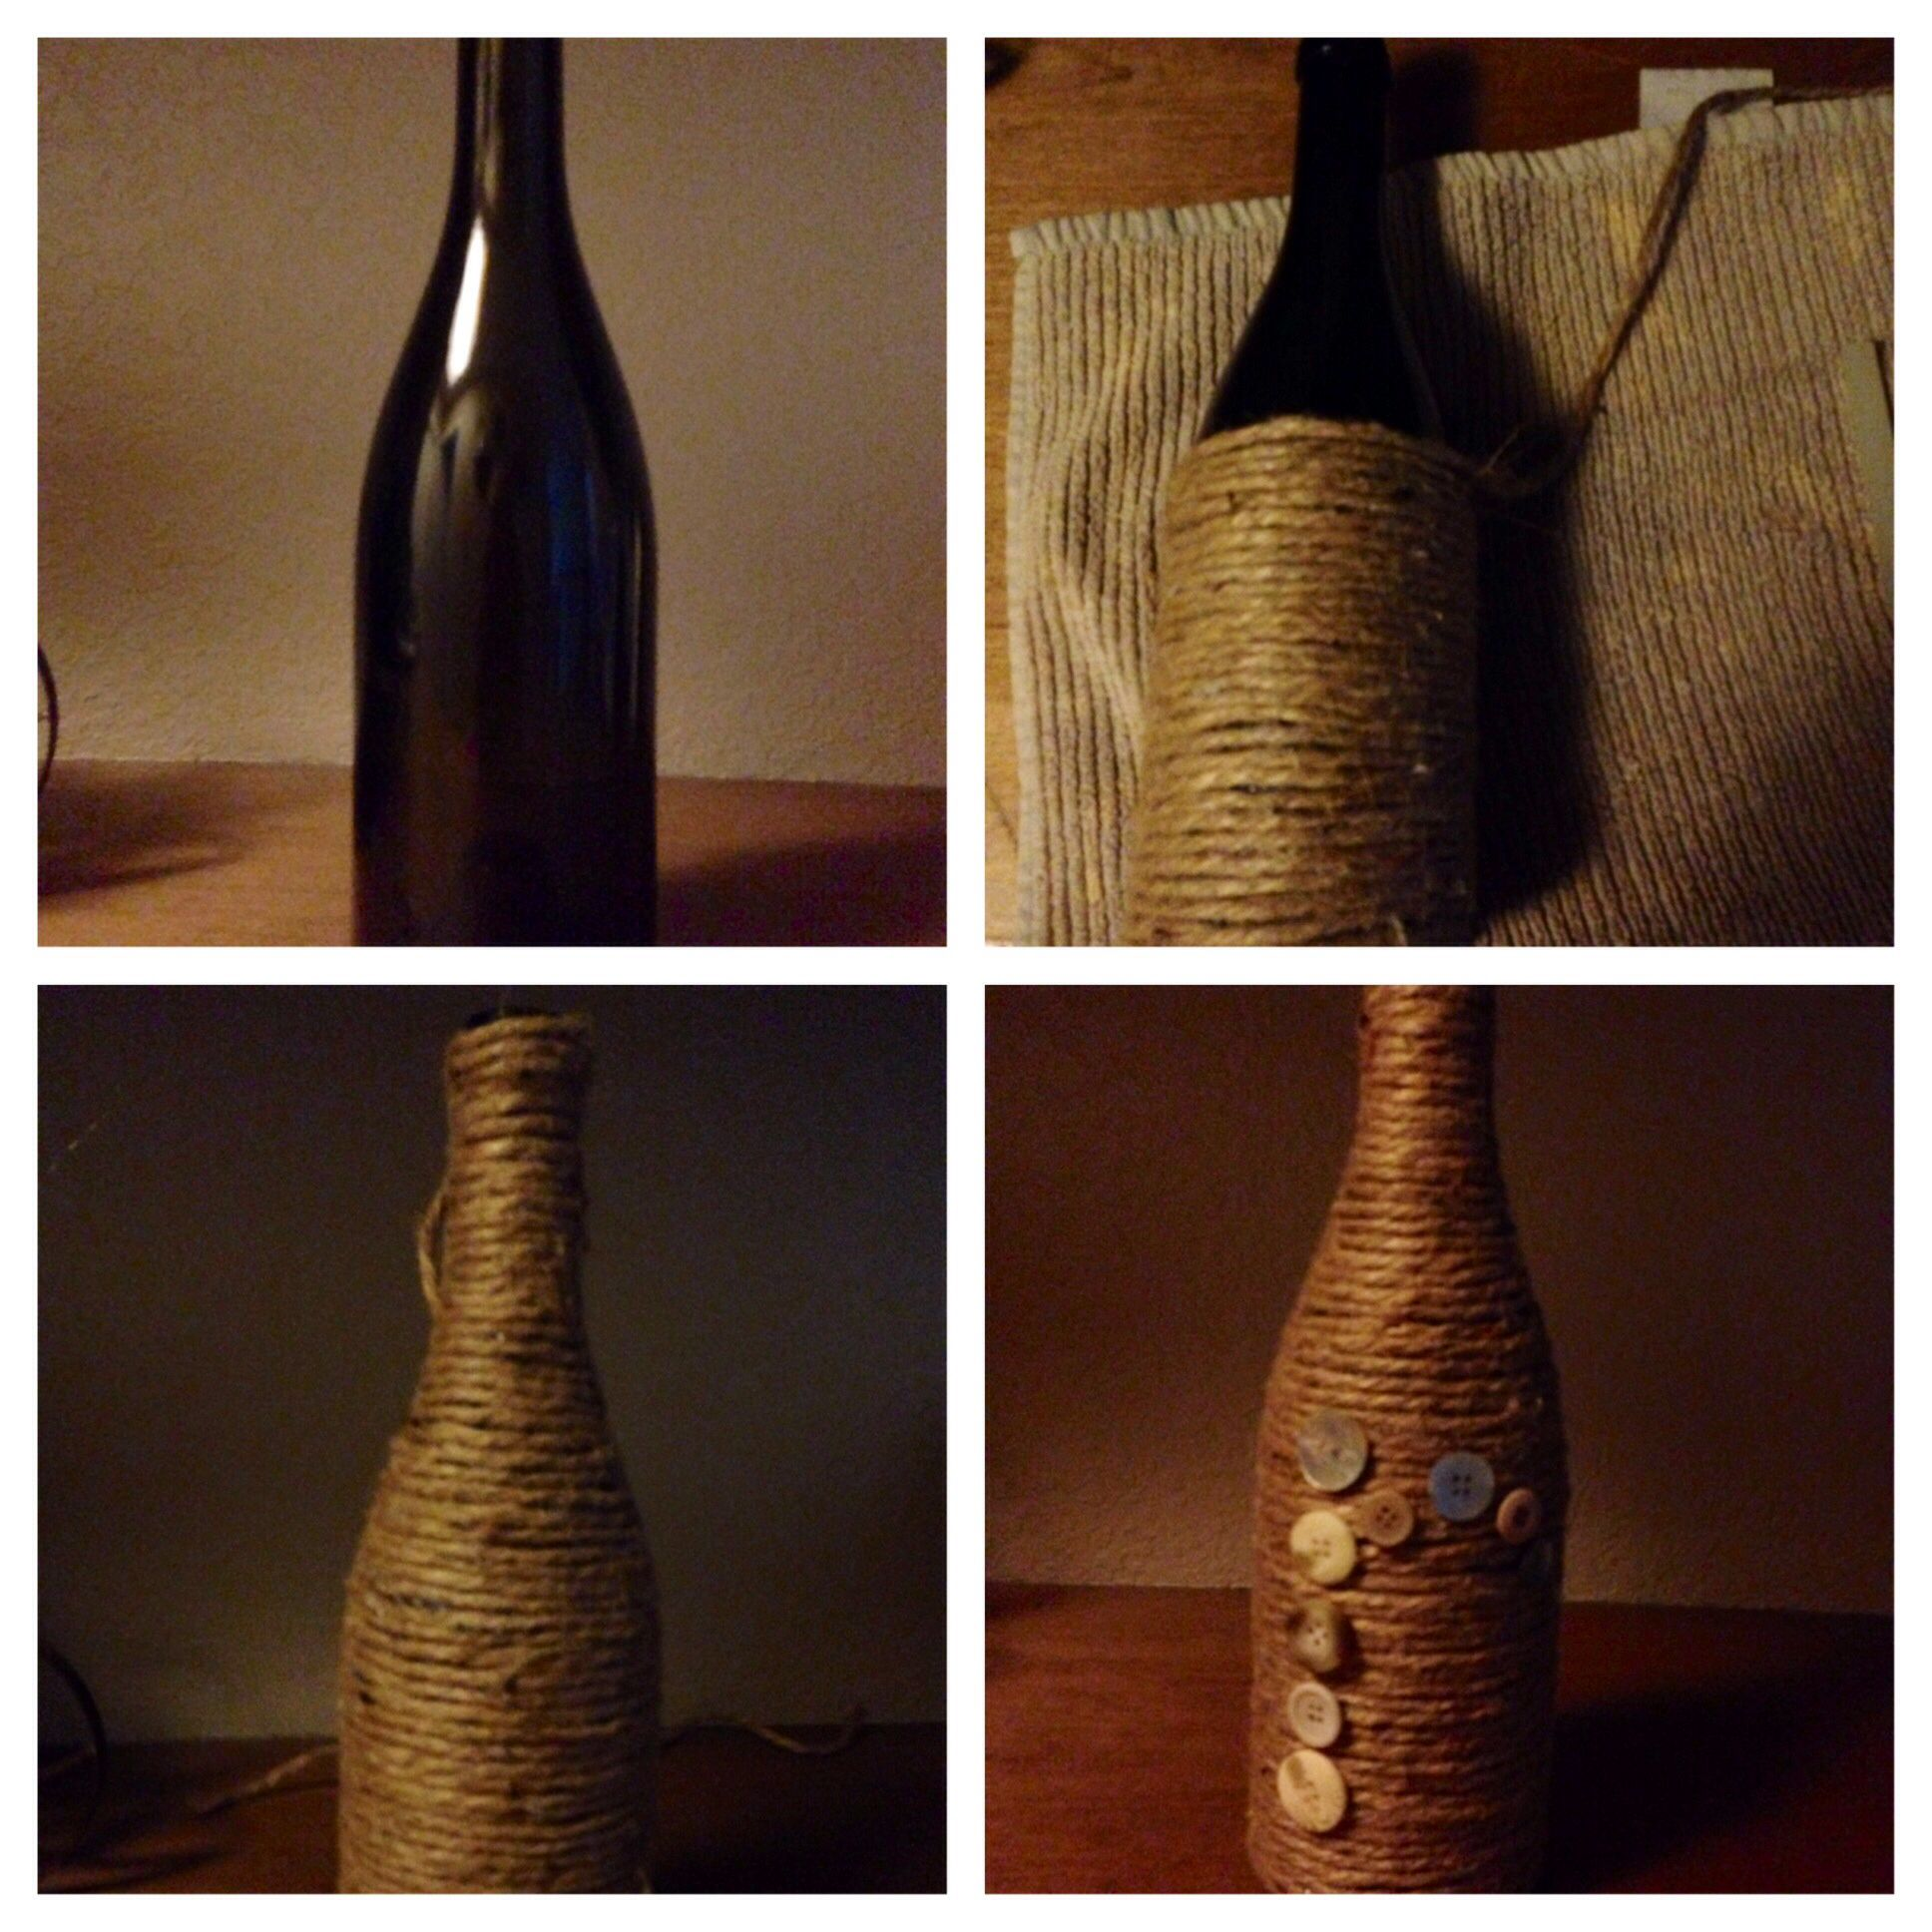 Decorative wine bottle. Took an old wine bottle, wrapped jute around it then hot glued buttons in the shape of an R on the front of it. This took about an hour. The most time consuming part was wrapping the jute around the bottle.